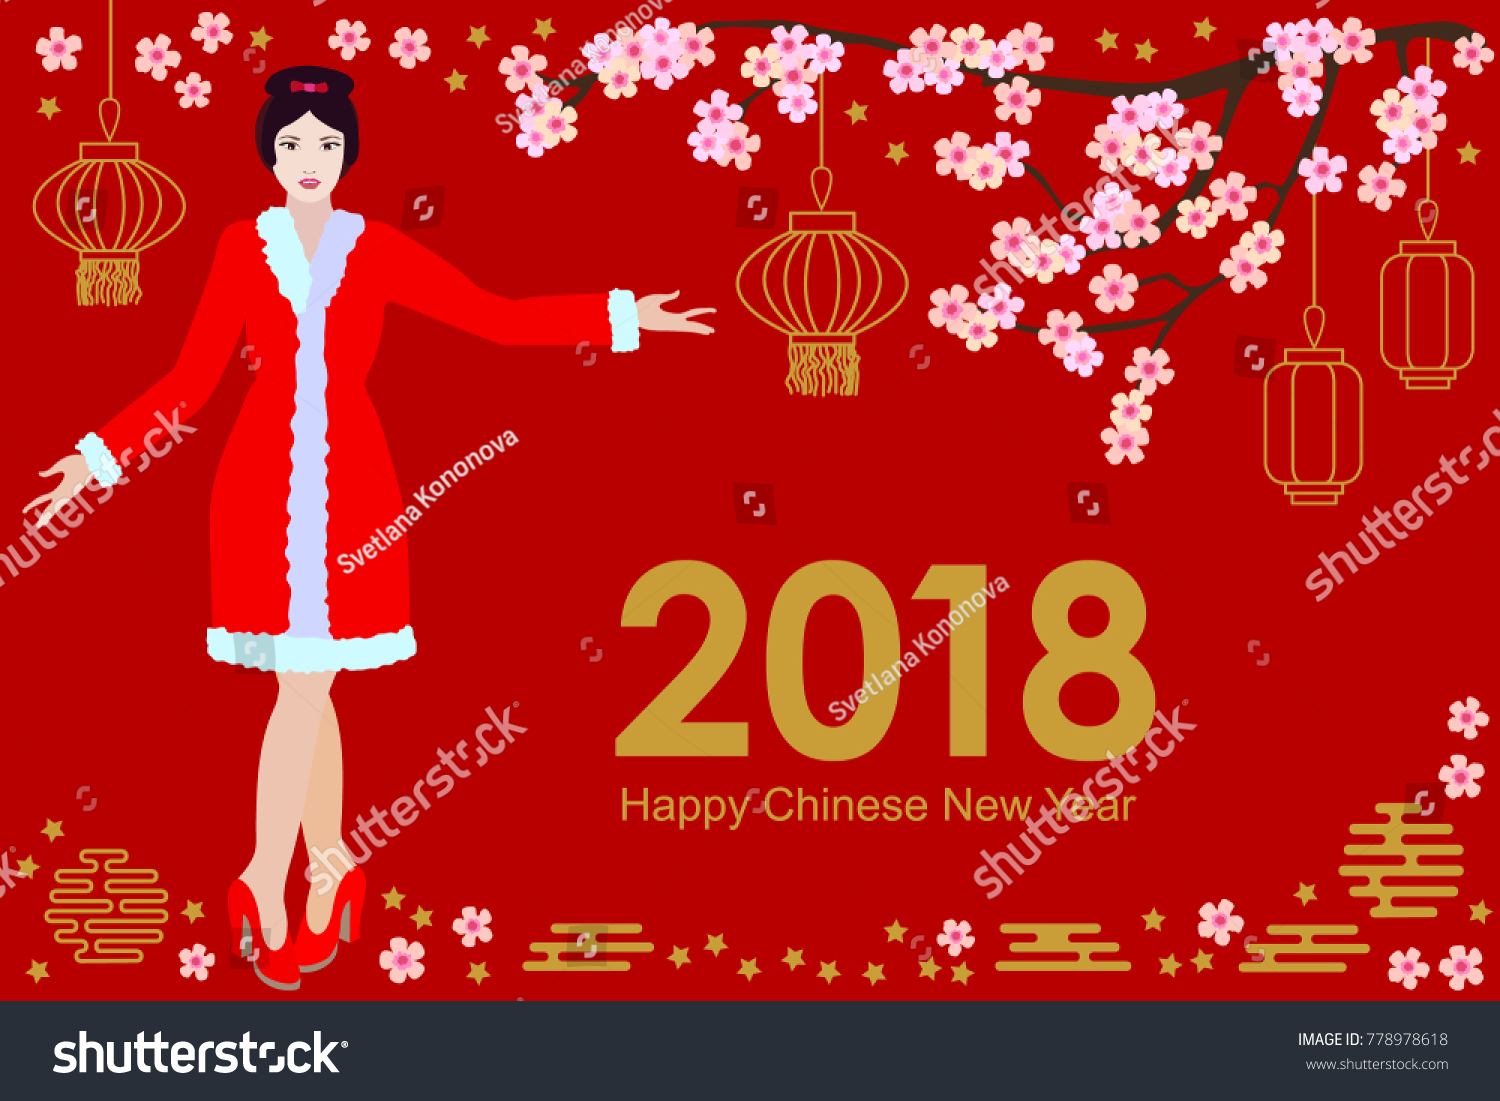 Happy Chinese New Year Card Beautiful Stock Vector 778978618 ...